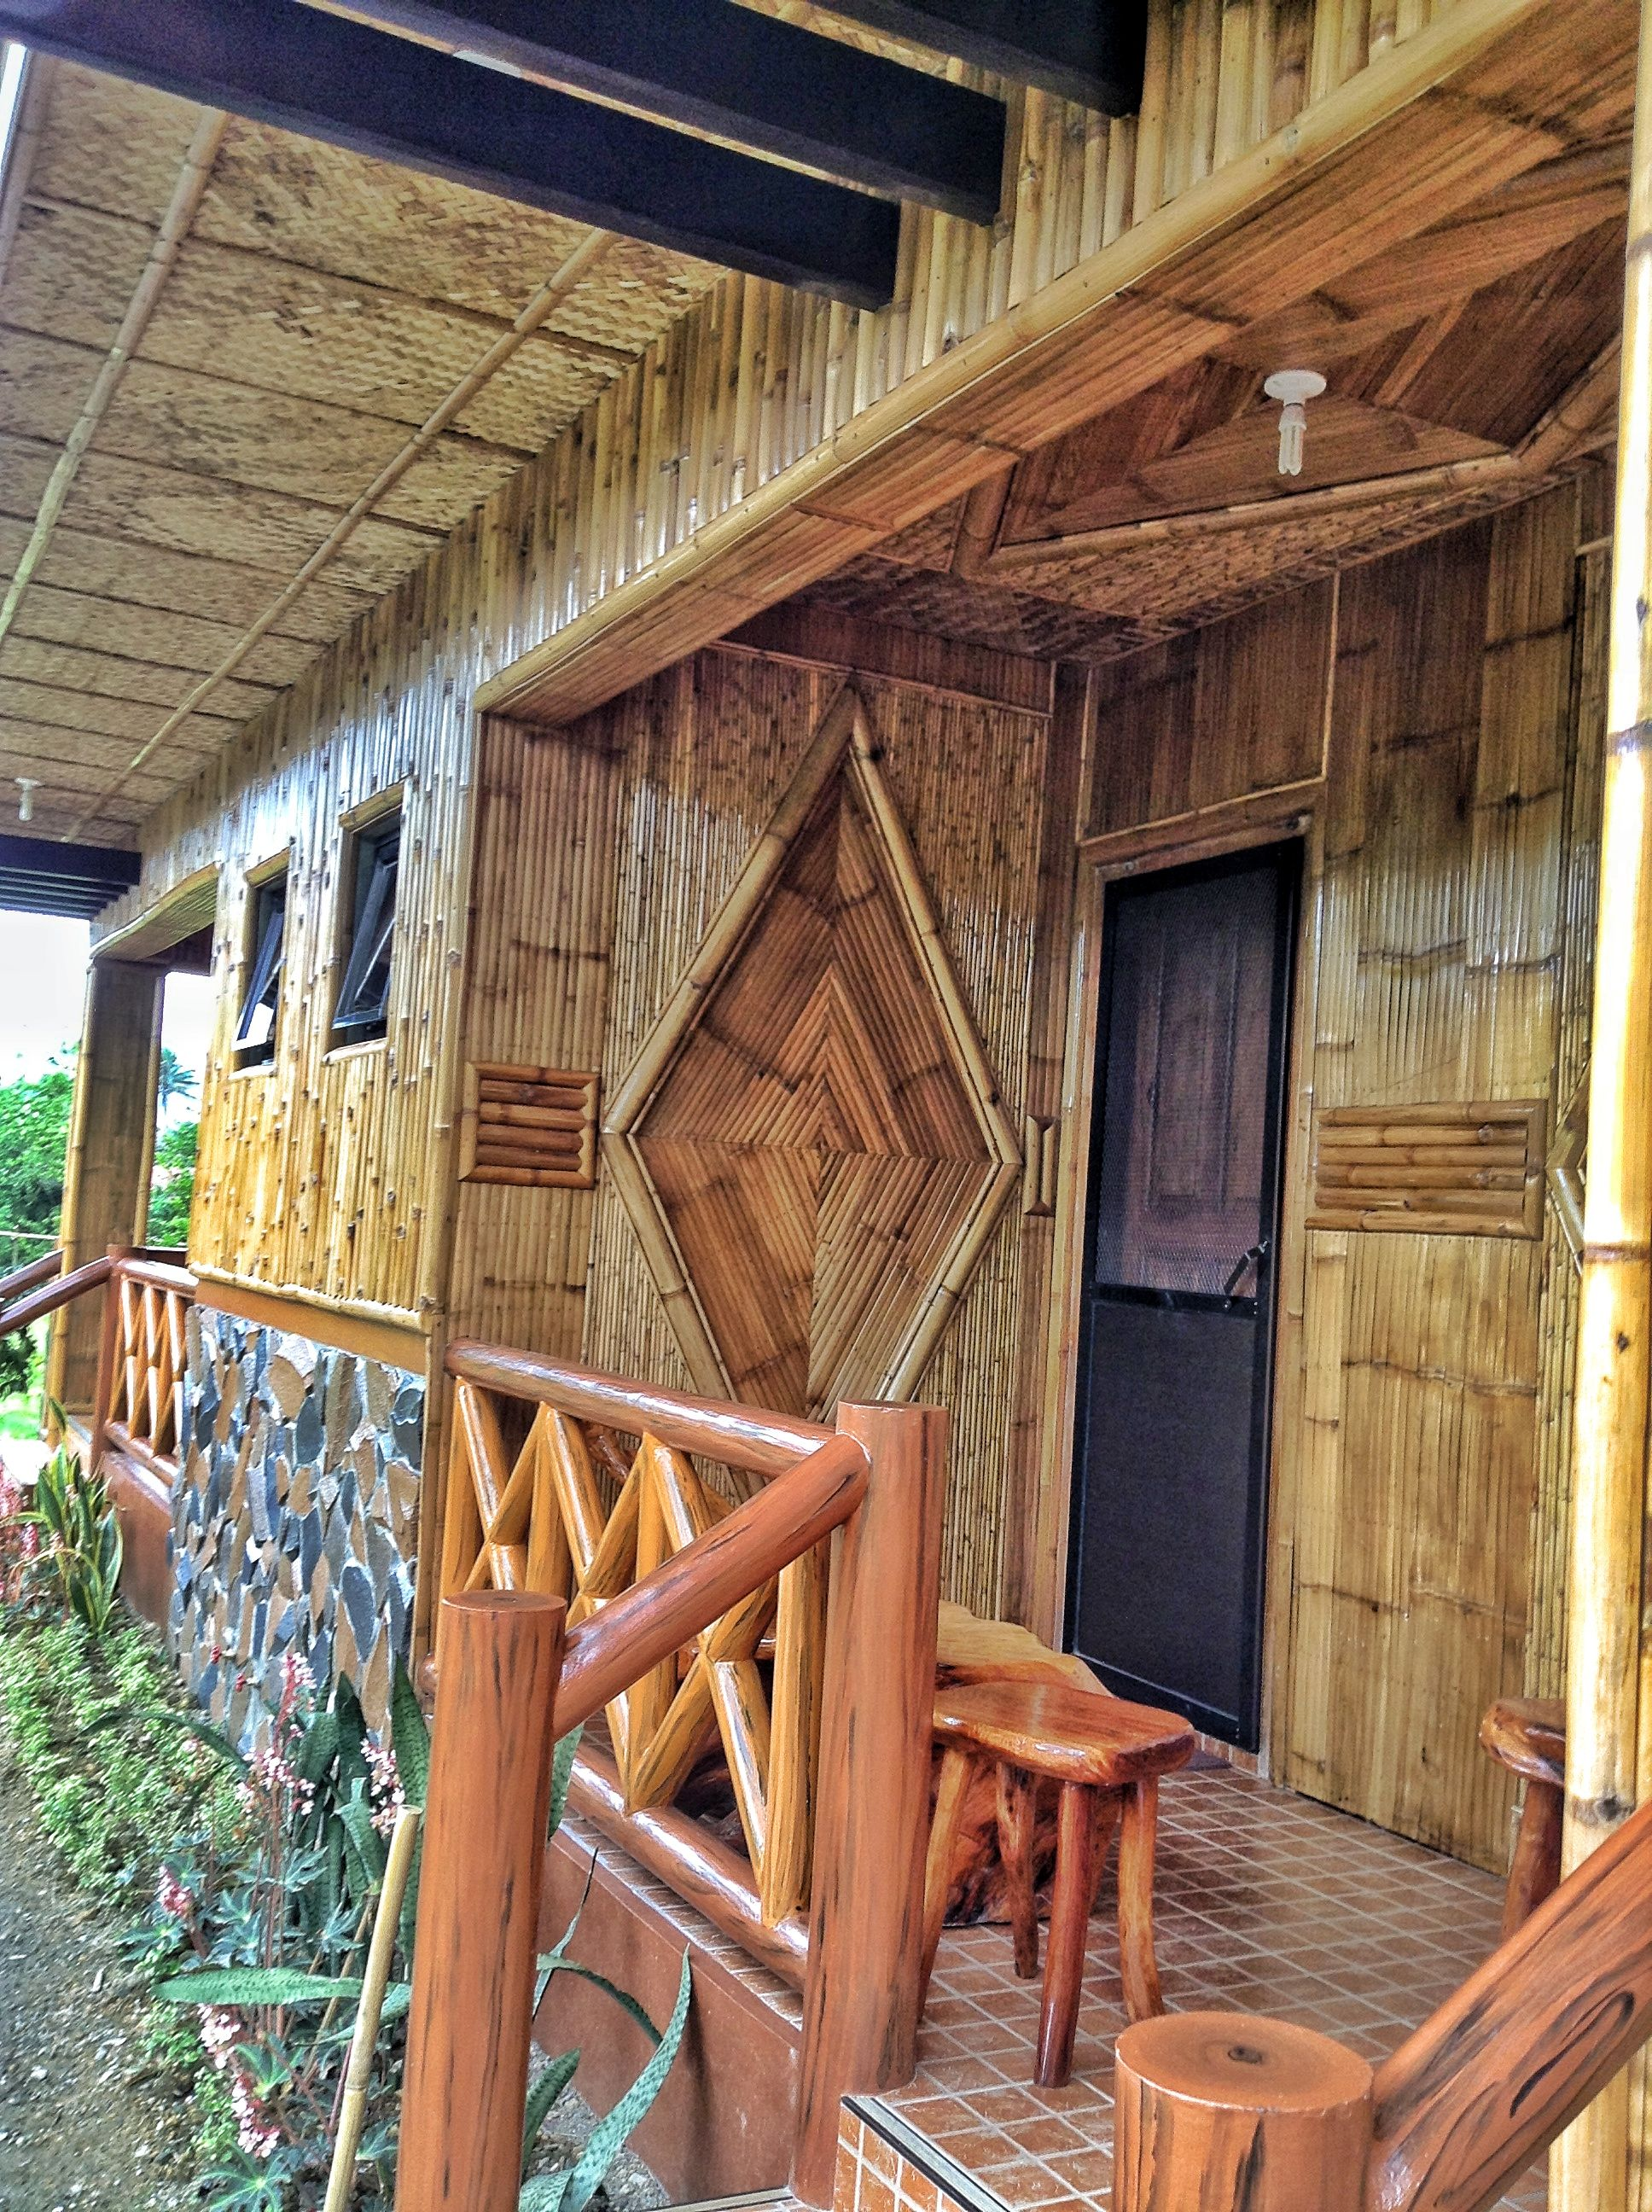 bamboo house in the philippines bahay kubo our native house feel